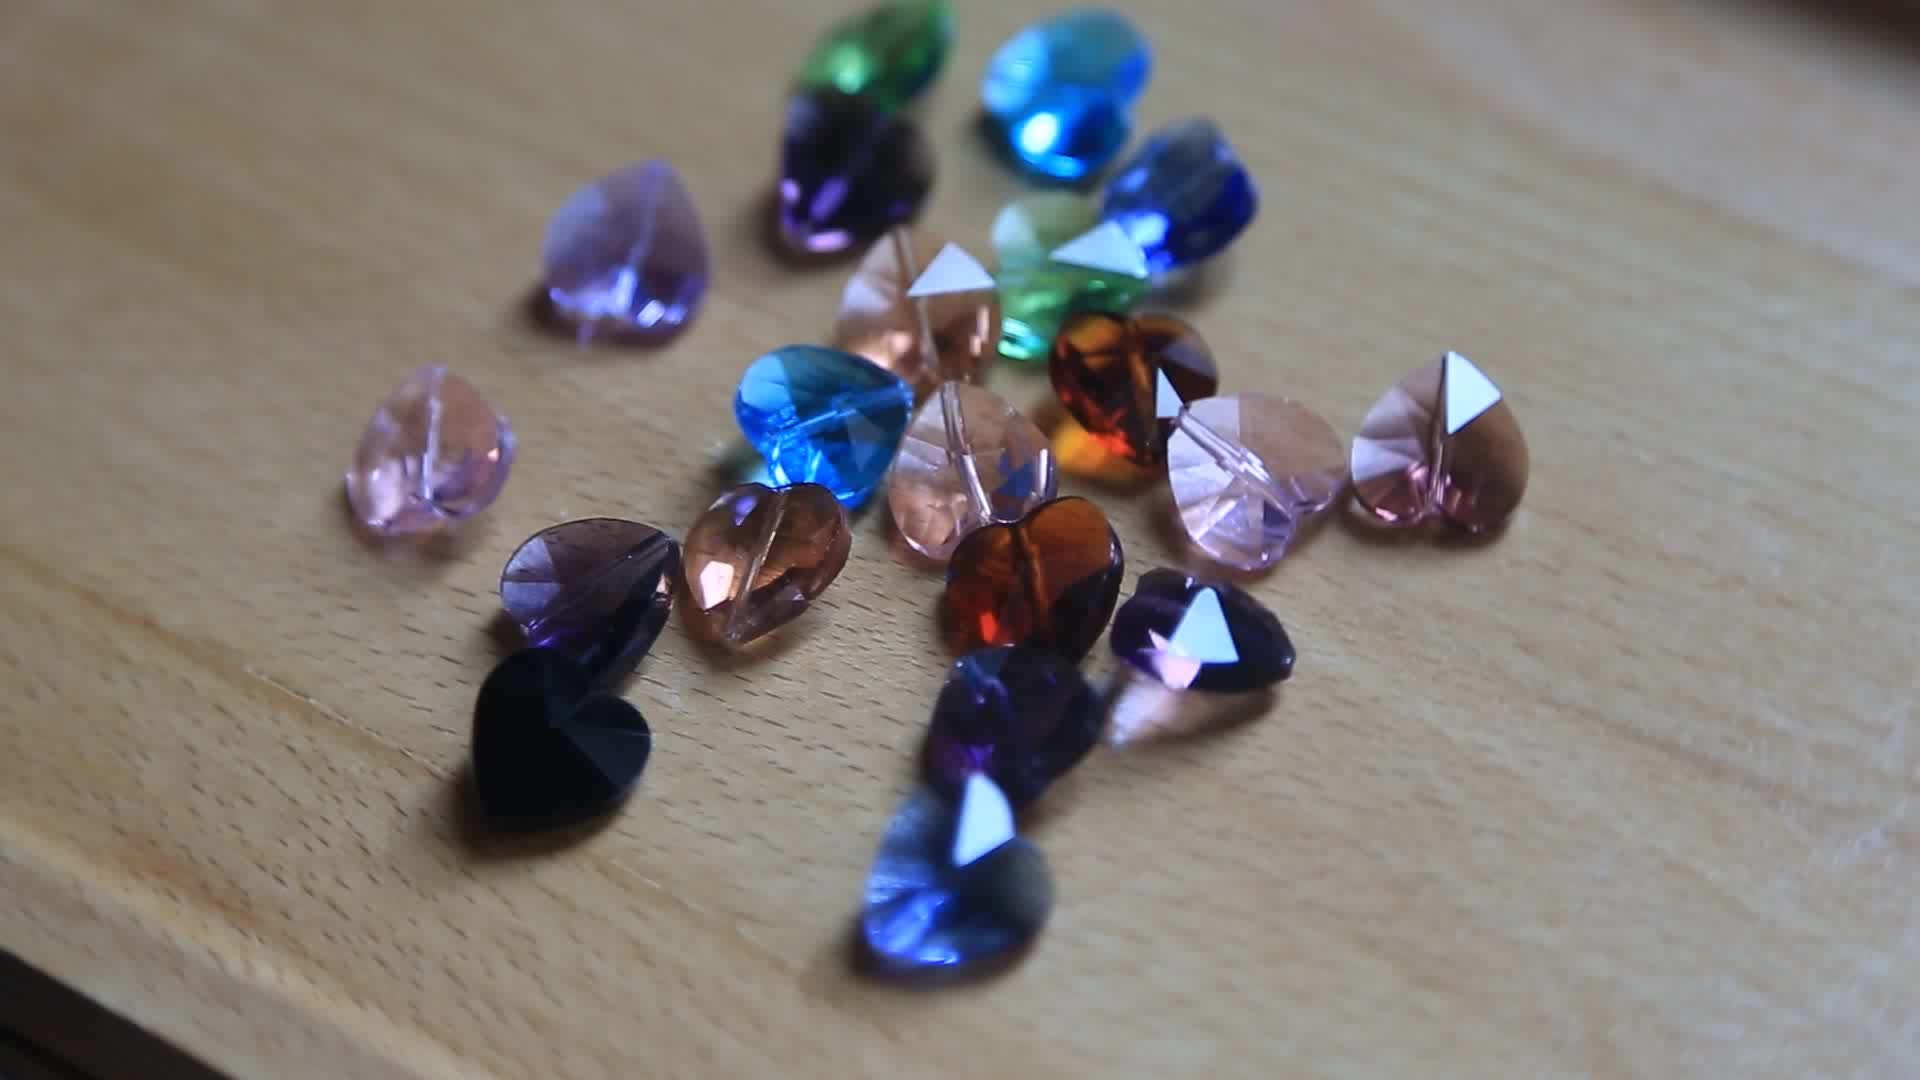 Hot Sell Straight Hole 14mm Crystal Heart Shape Crystal Charms Pendant for Bracelet Rings Decorative Making